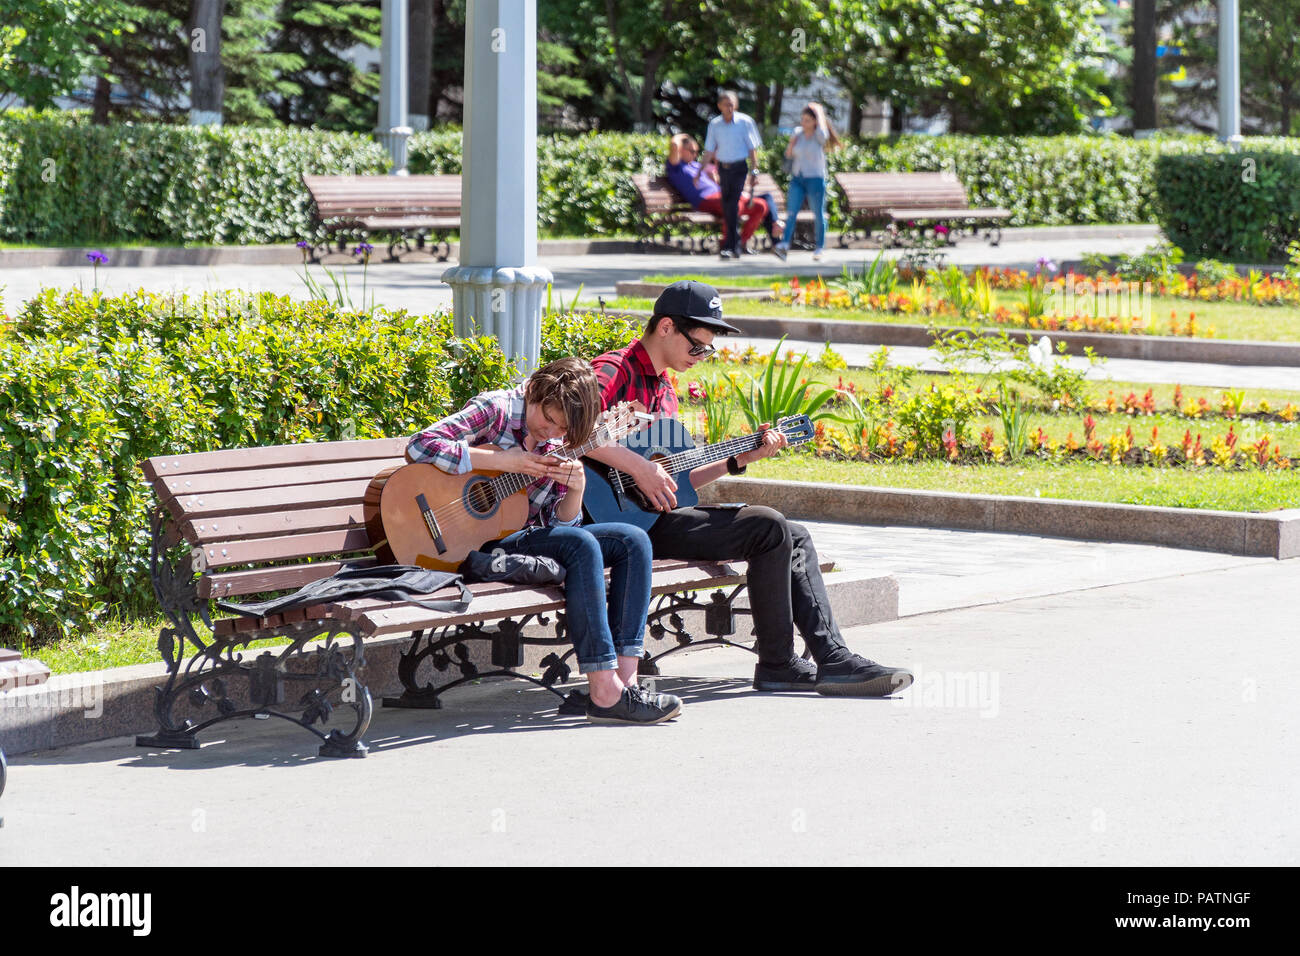 Two young street musicians with guitars on a Park bench - Stock Image